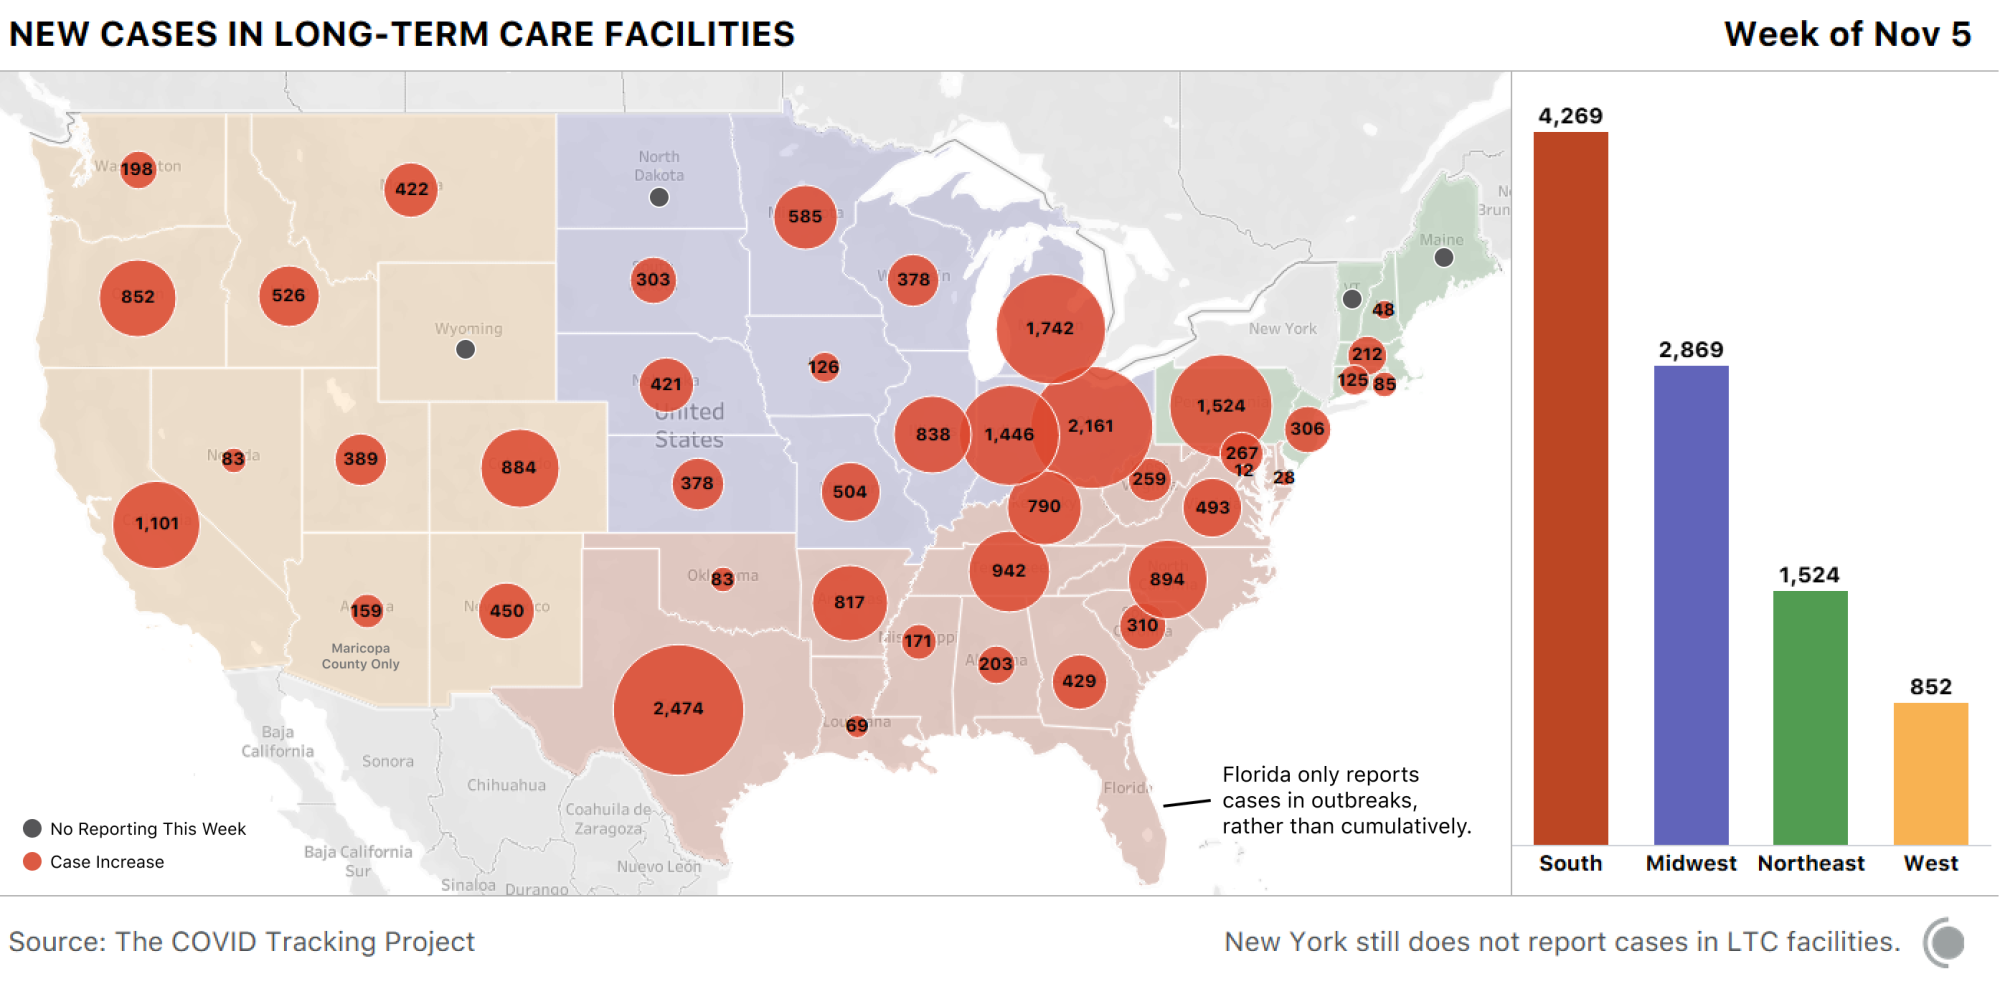 Map of the US showing new cases in LTC facilities this week. Texas saw the most cases with 2,474. Most cases are occurring in the South and Midwest.